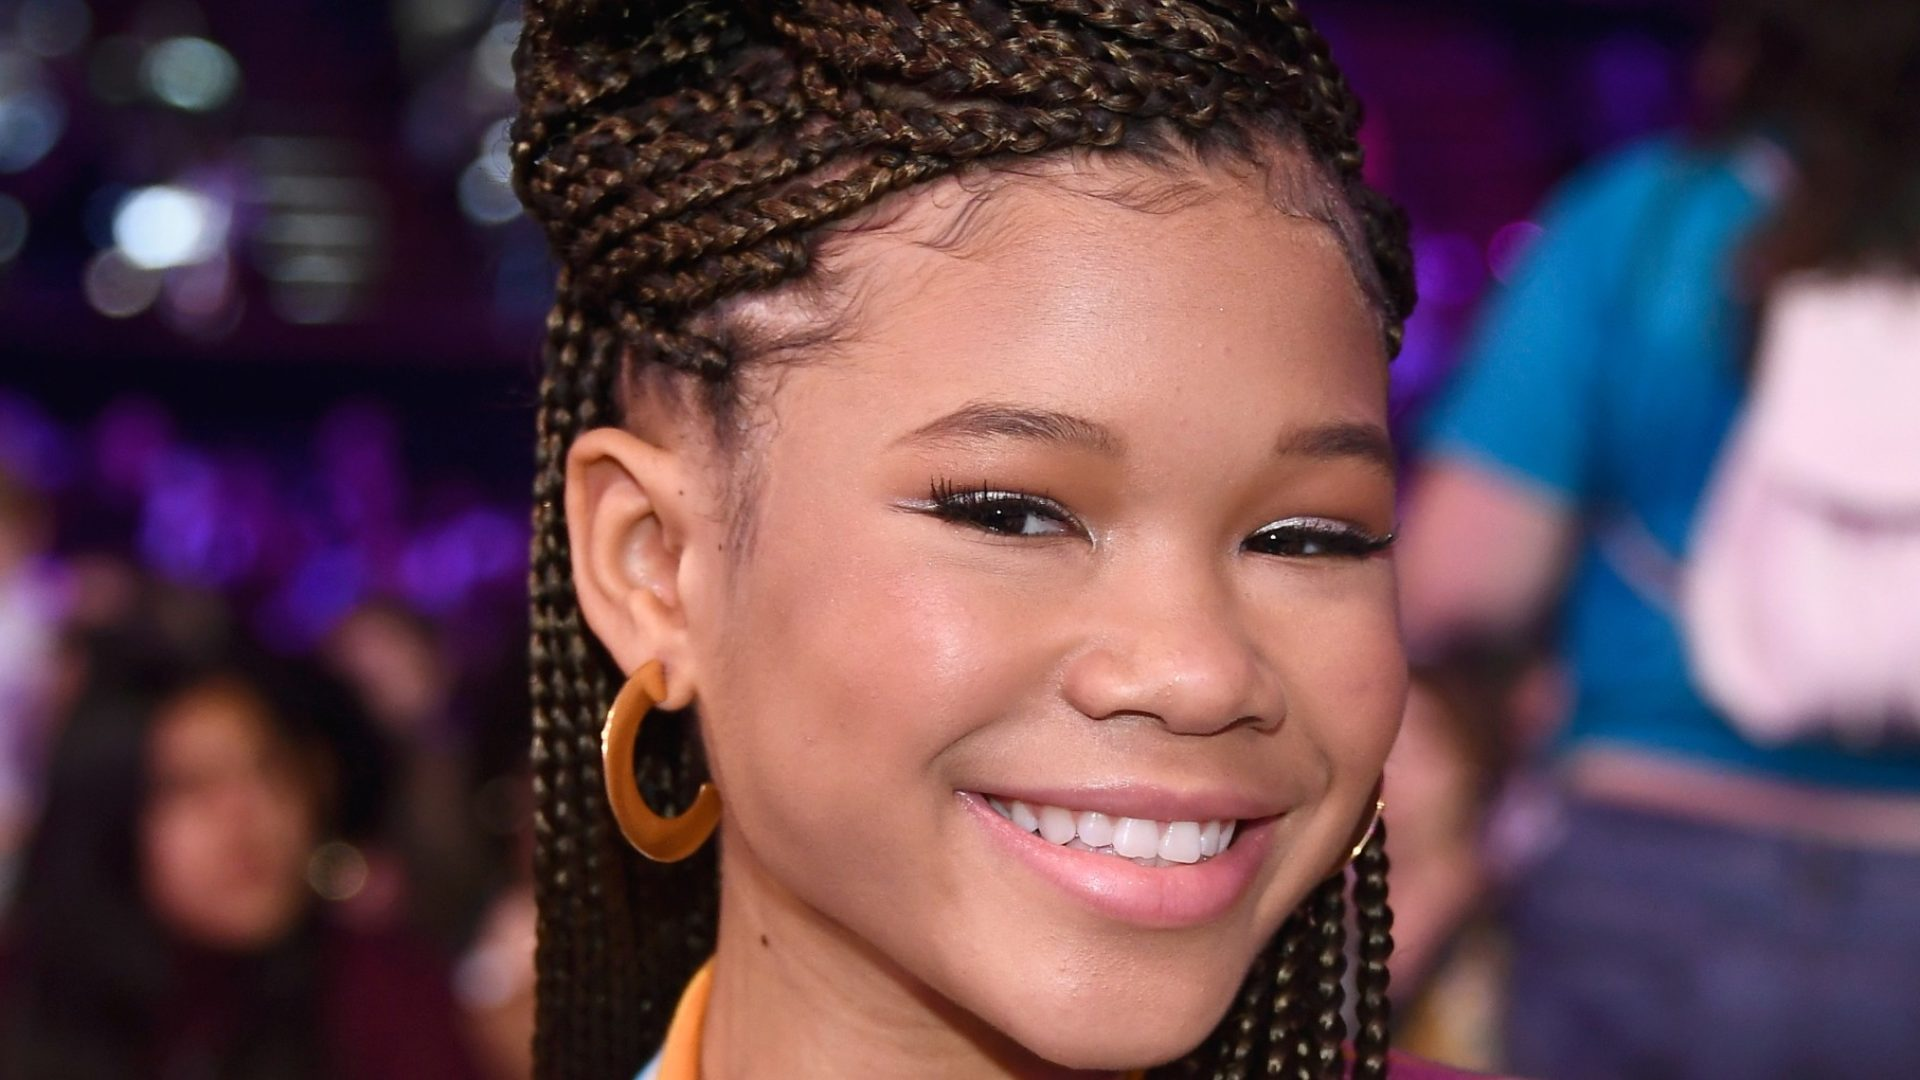 5 Cool Ways To Style Your Box Braids For Holiday Parties Essence